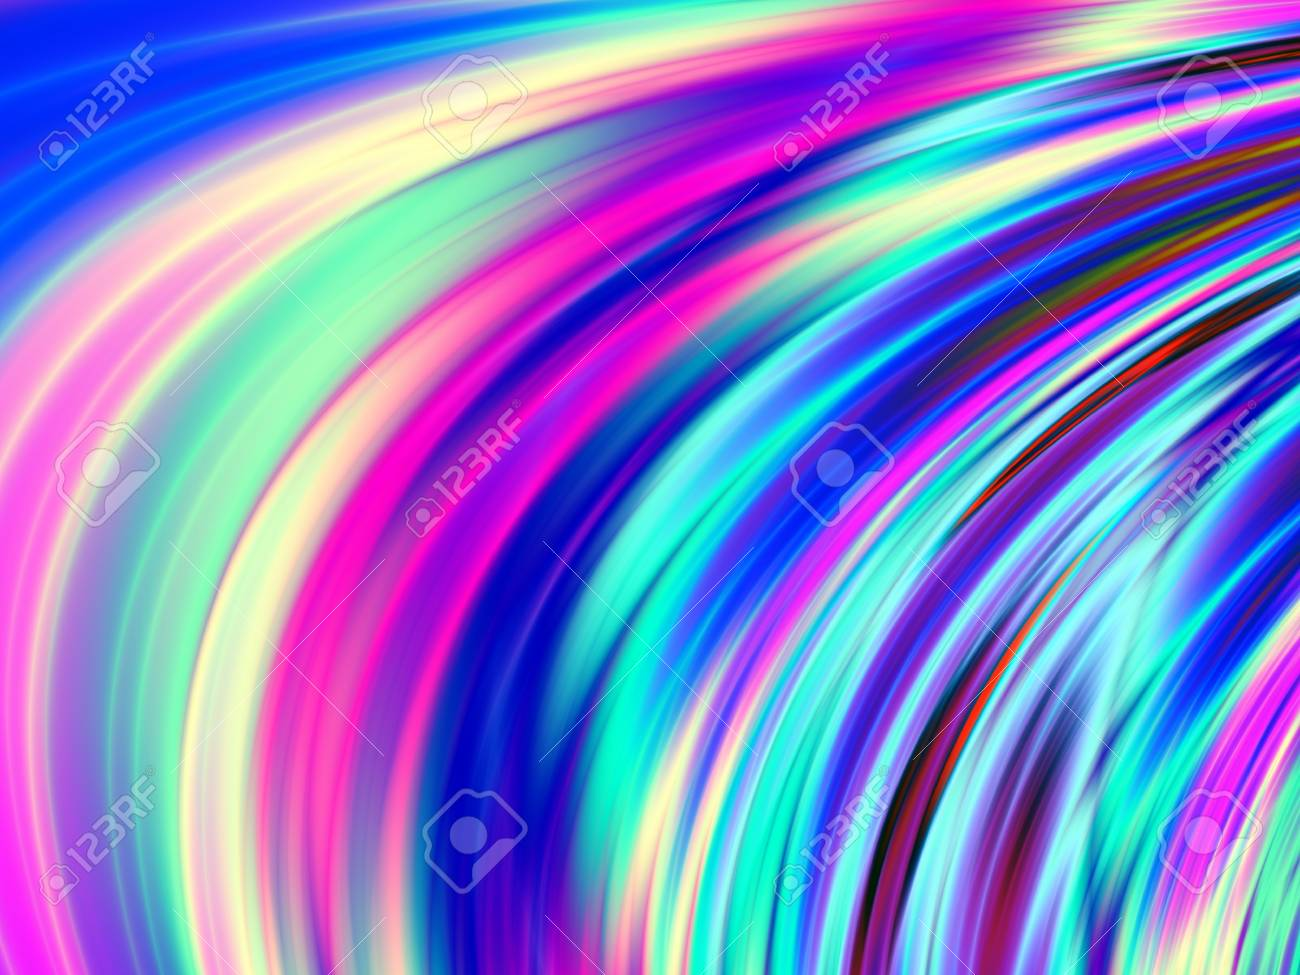 Colorful Phone Wallpaper Nice Wave Design Stock Photo Picture And